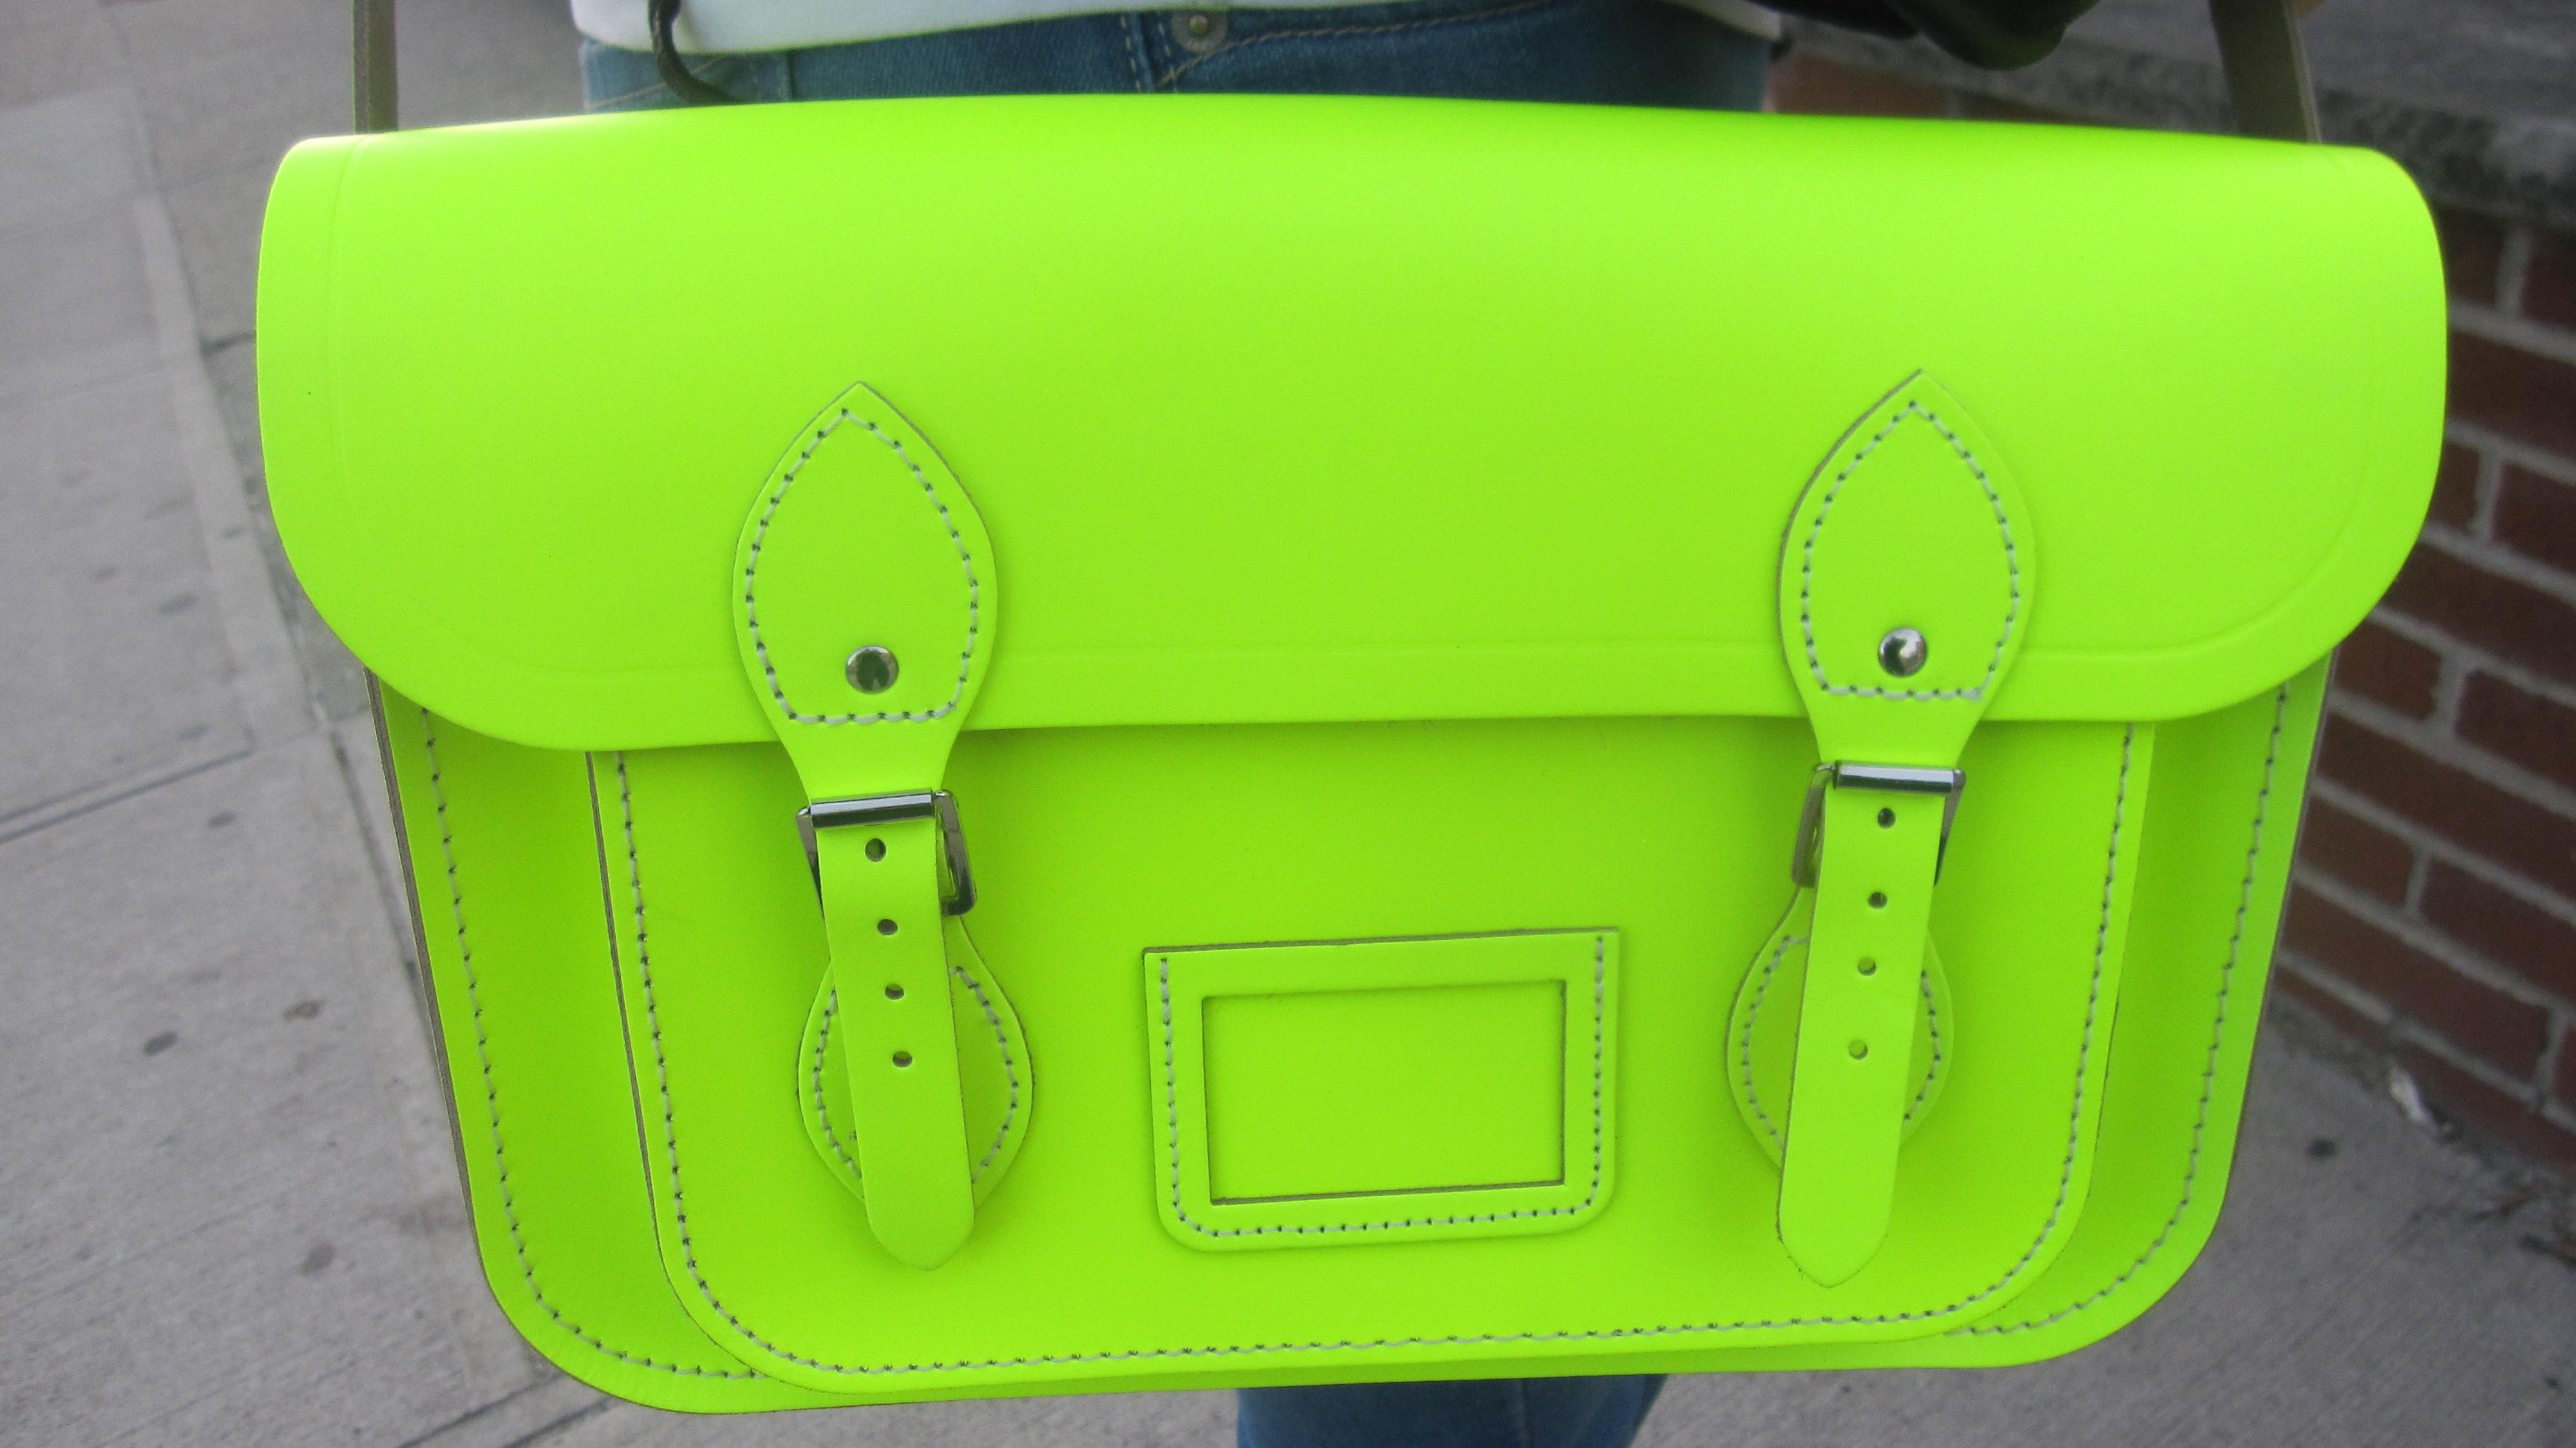 013 Balenciaga and neon yellow